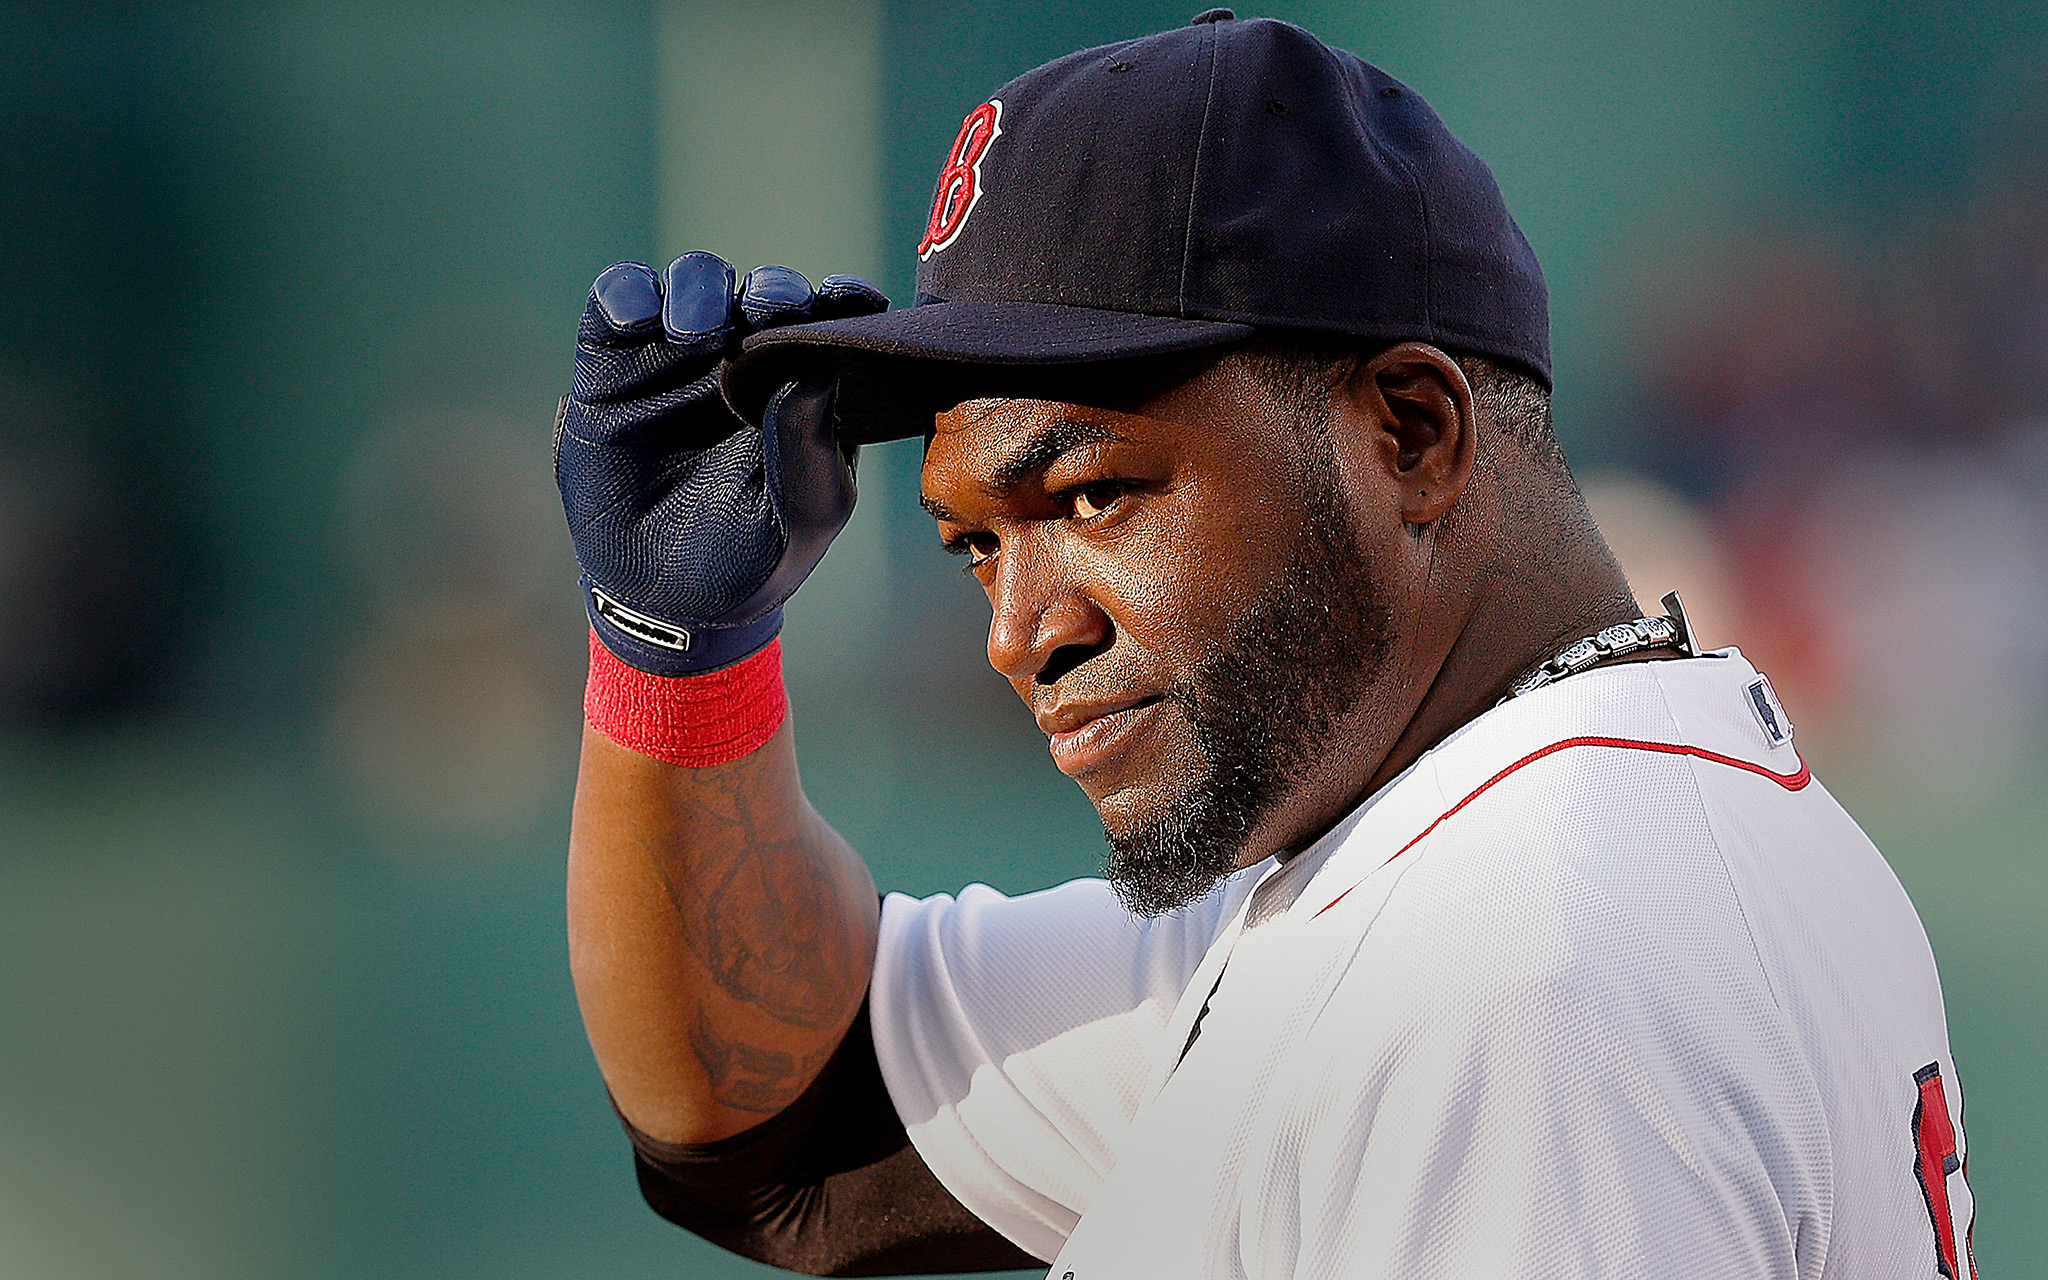 David Ortiz Retirement